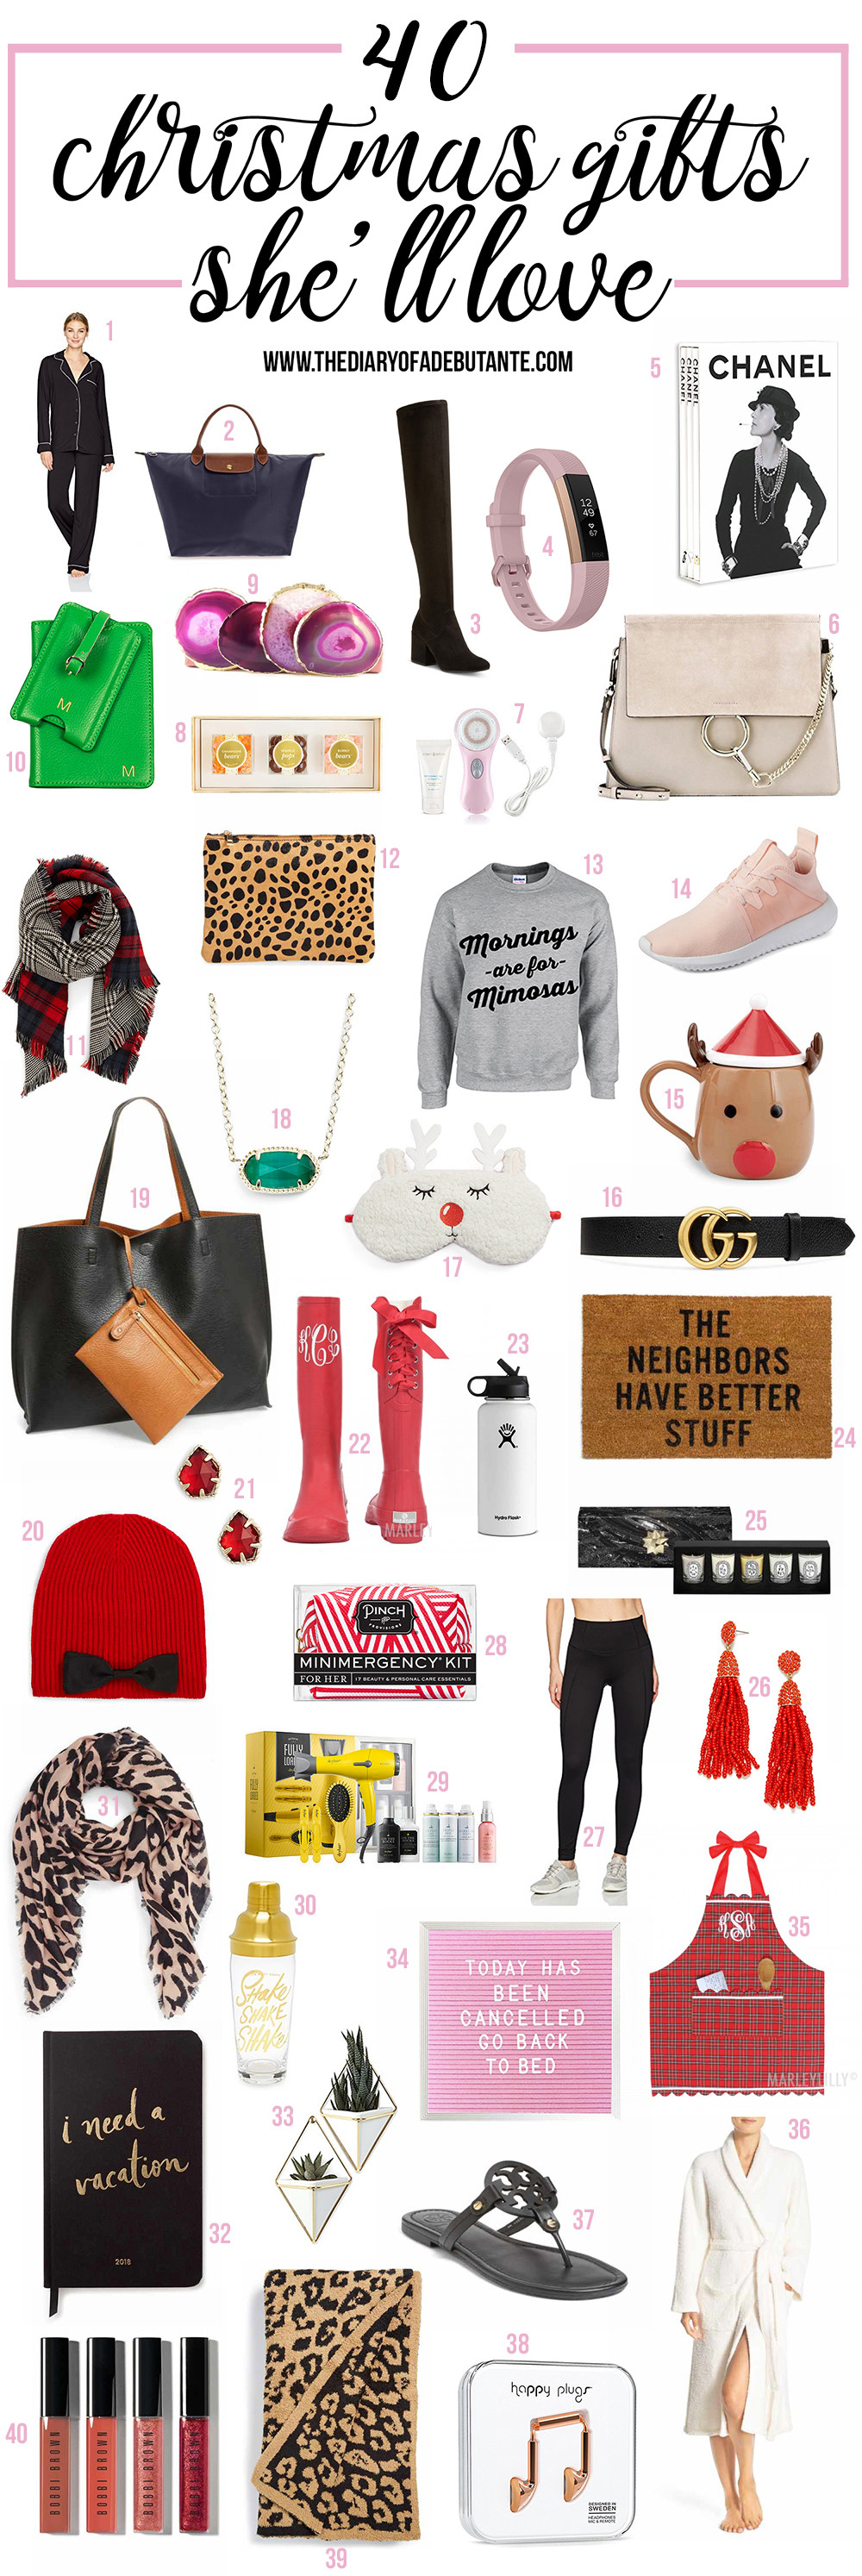 Best ideas about Gift Ideas For Girlfriend Christmas . Save or Pin Cool Gift Ideas for Girlfriend Mom or BFF this Holiday Now.